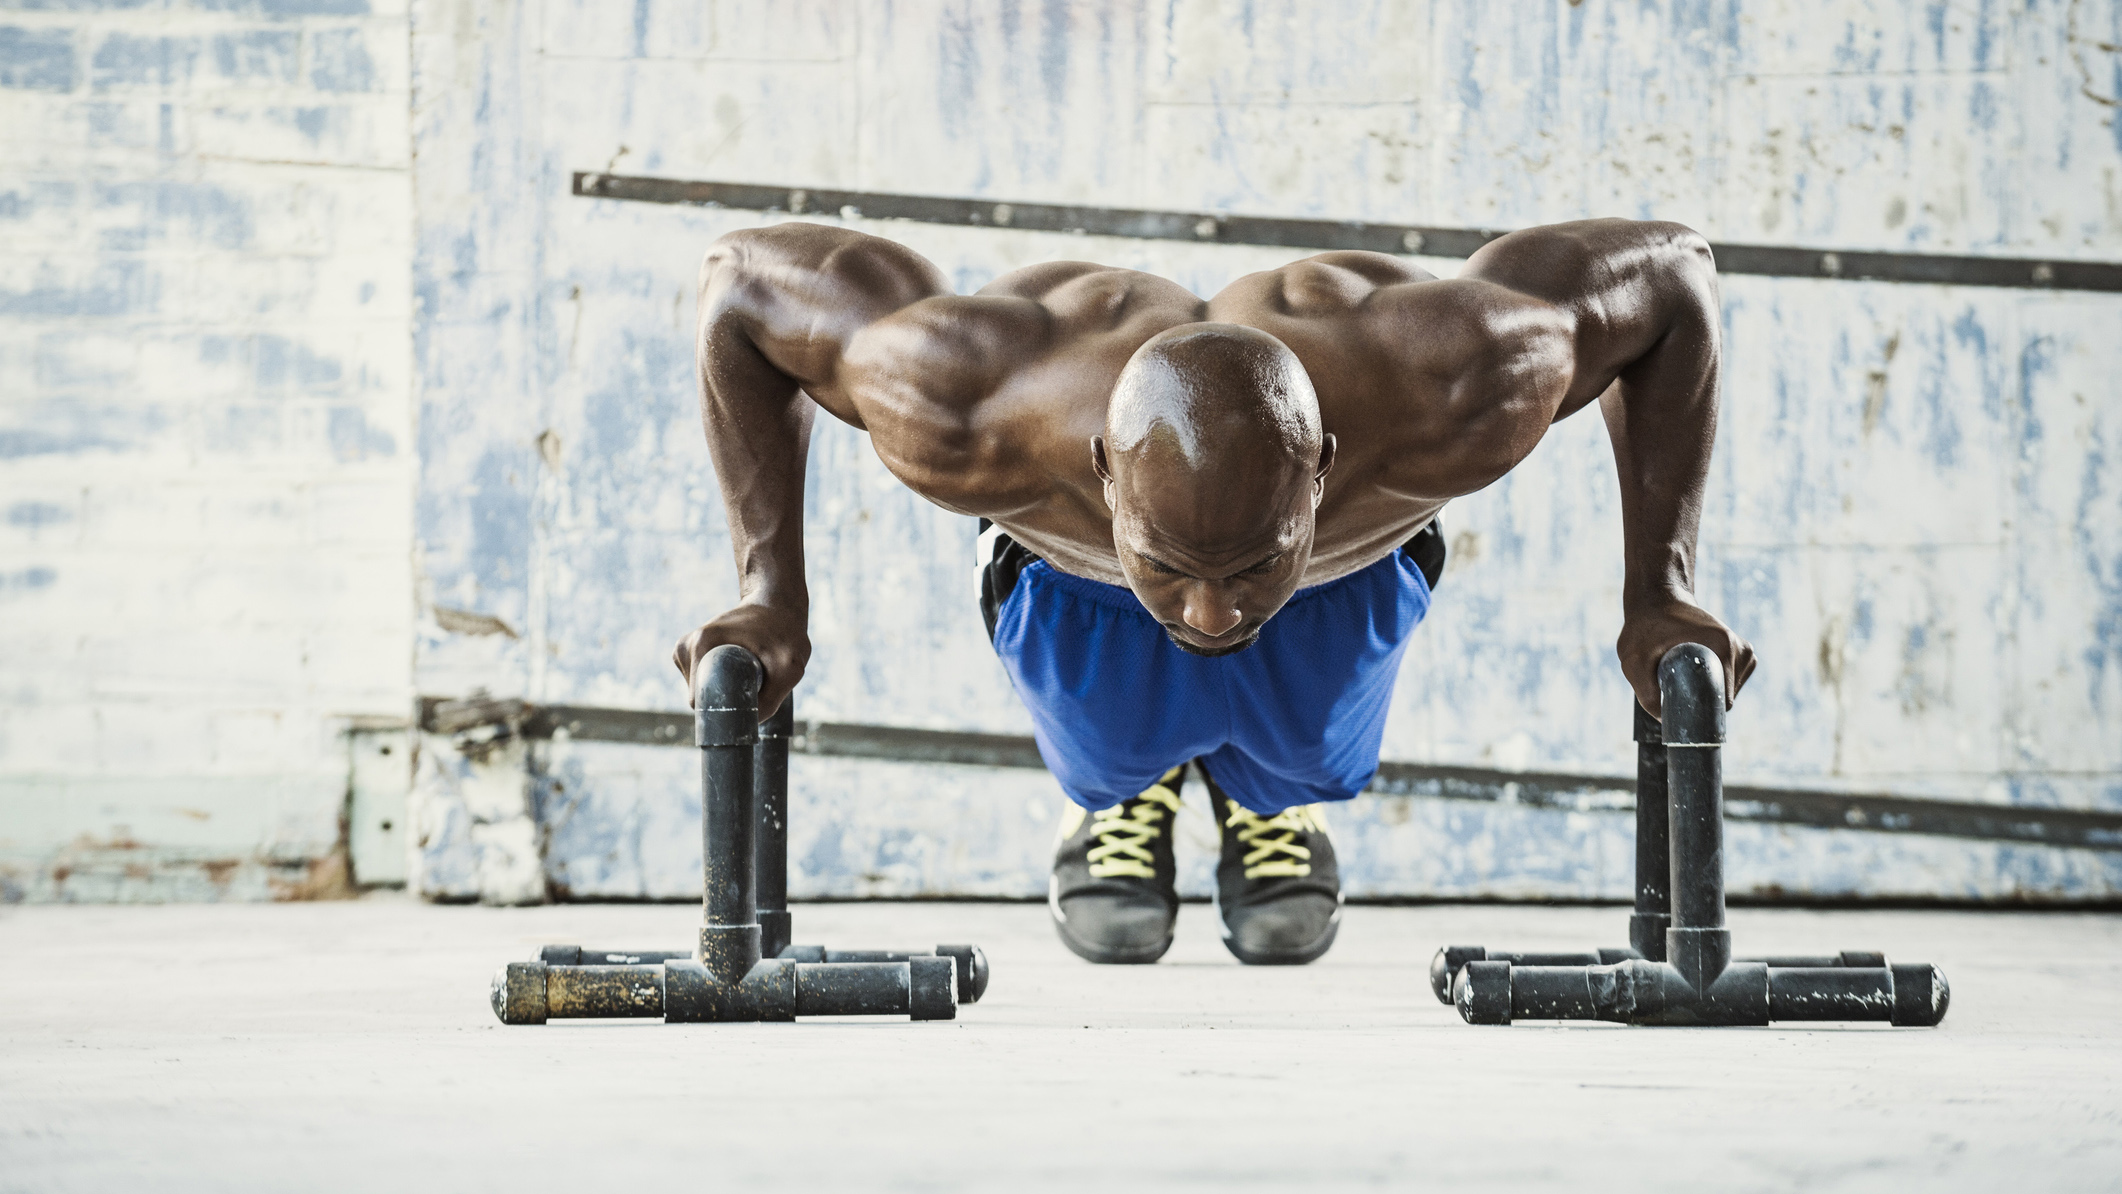 The best push up workouts to get big arms AND a broad chest